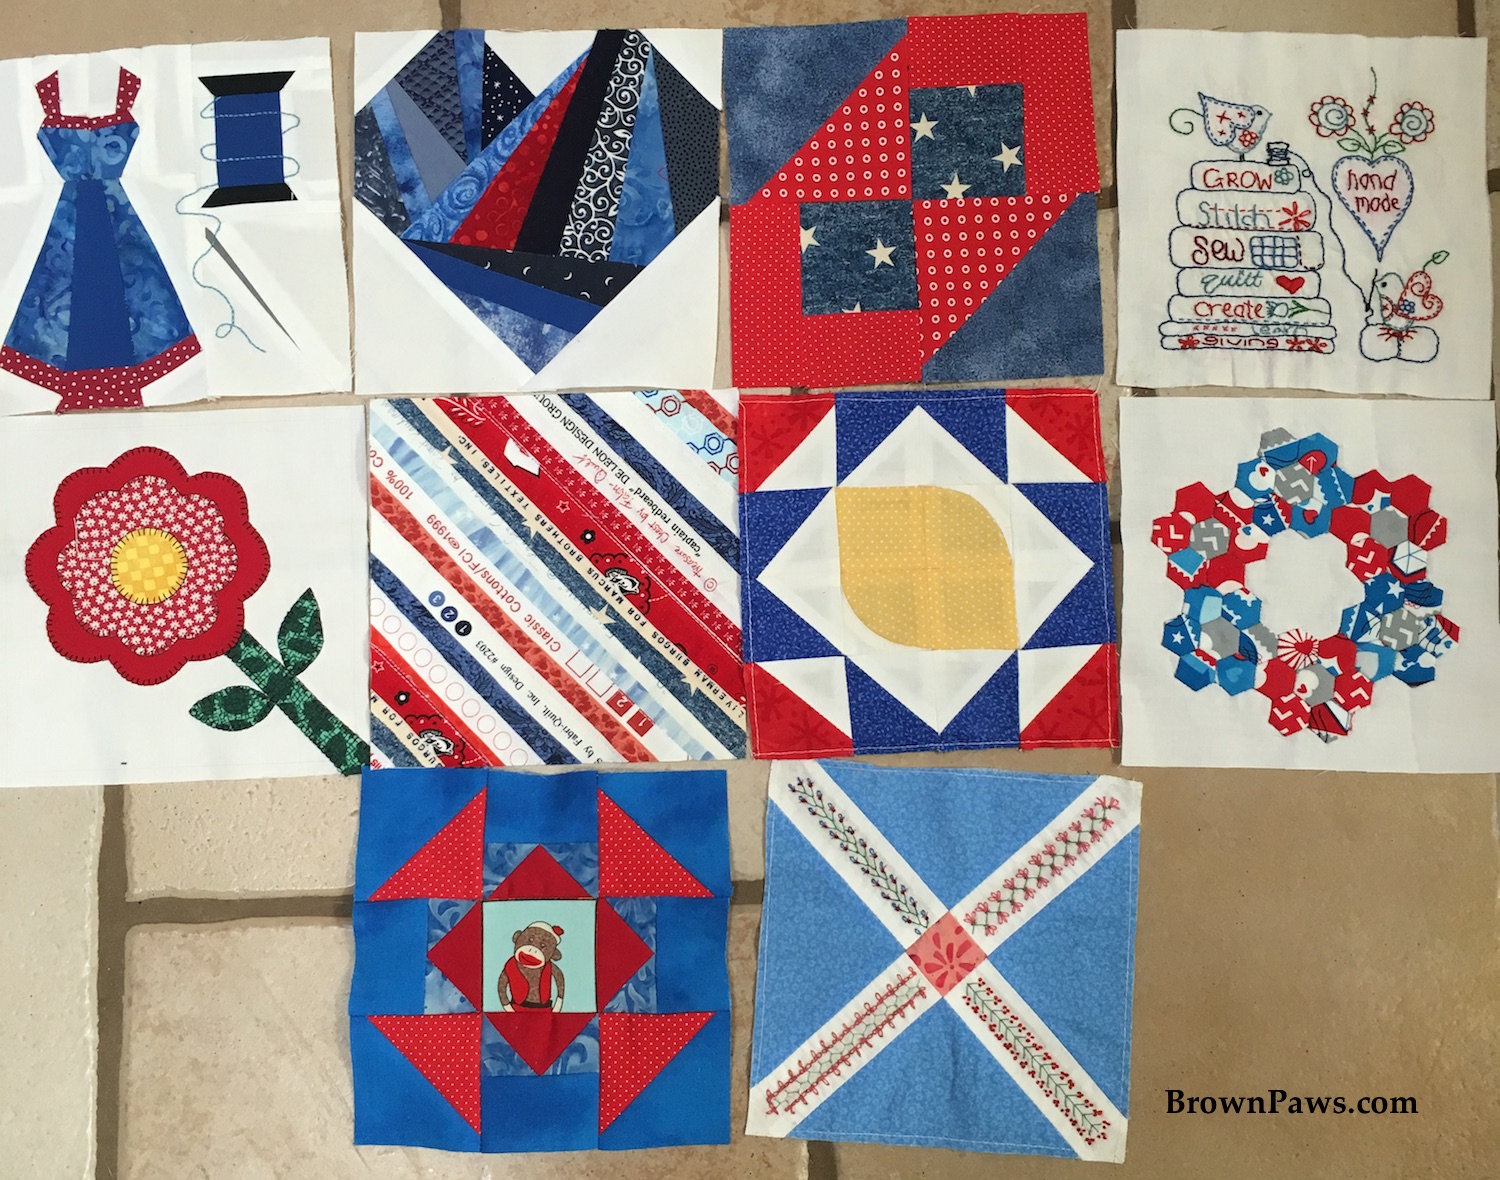 Splendid Sampler – June Progress